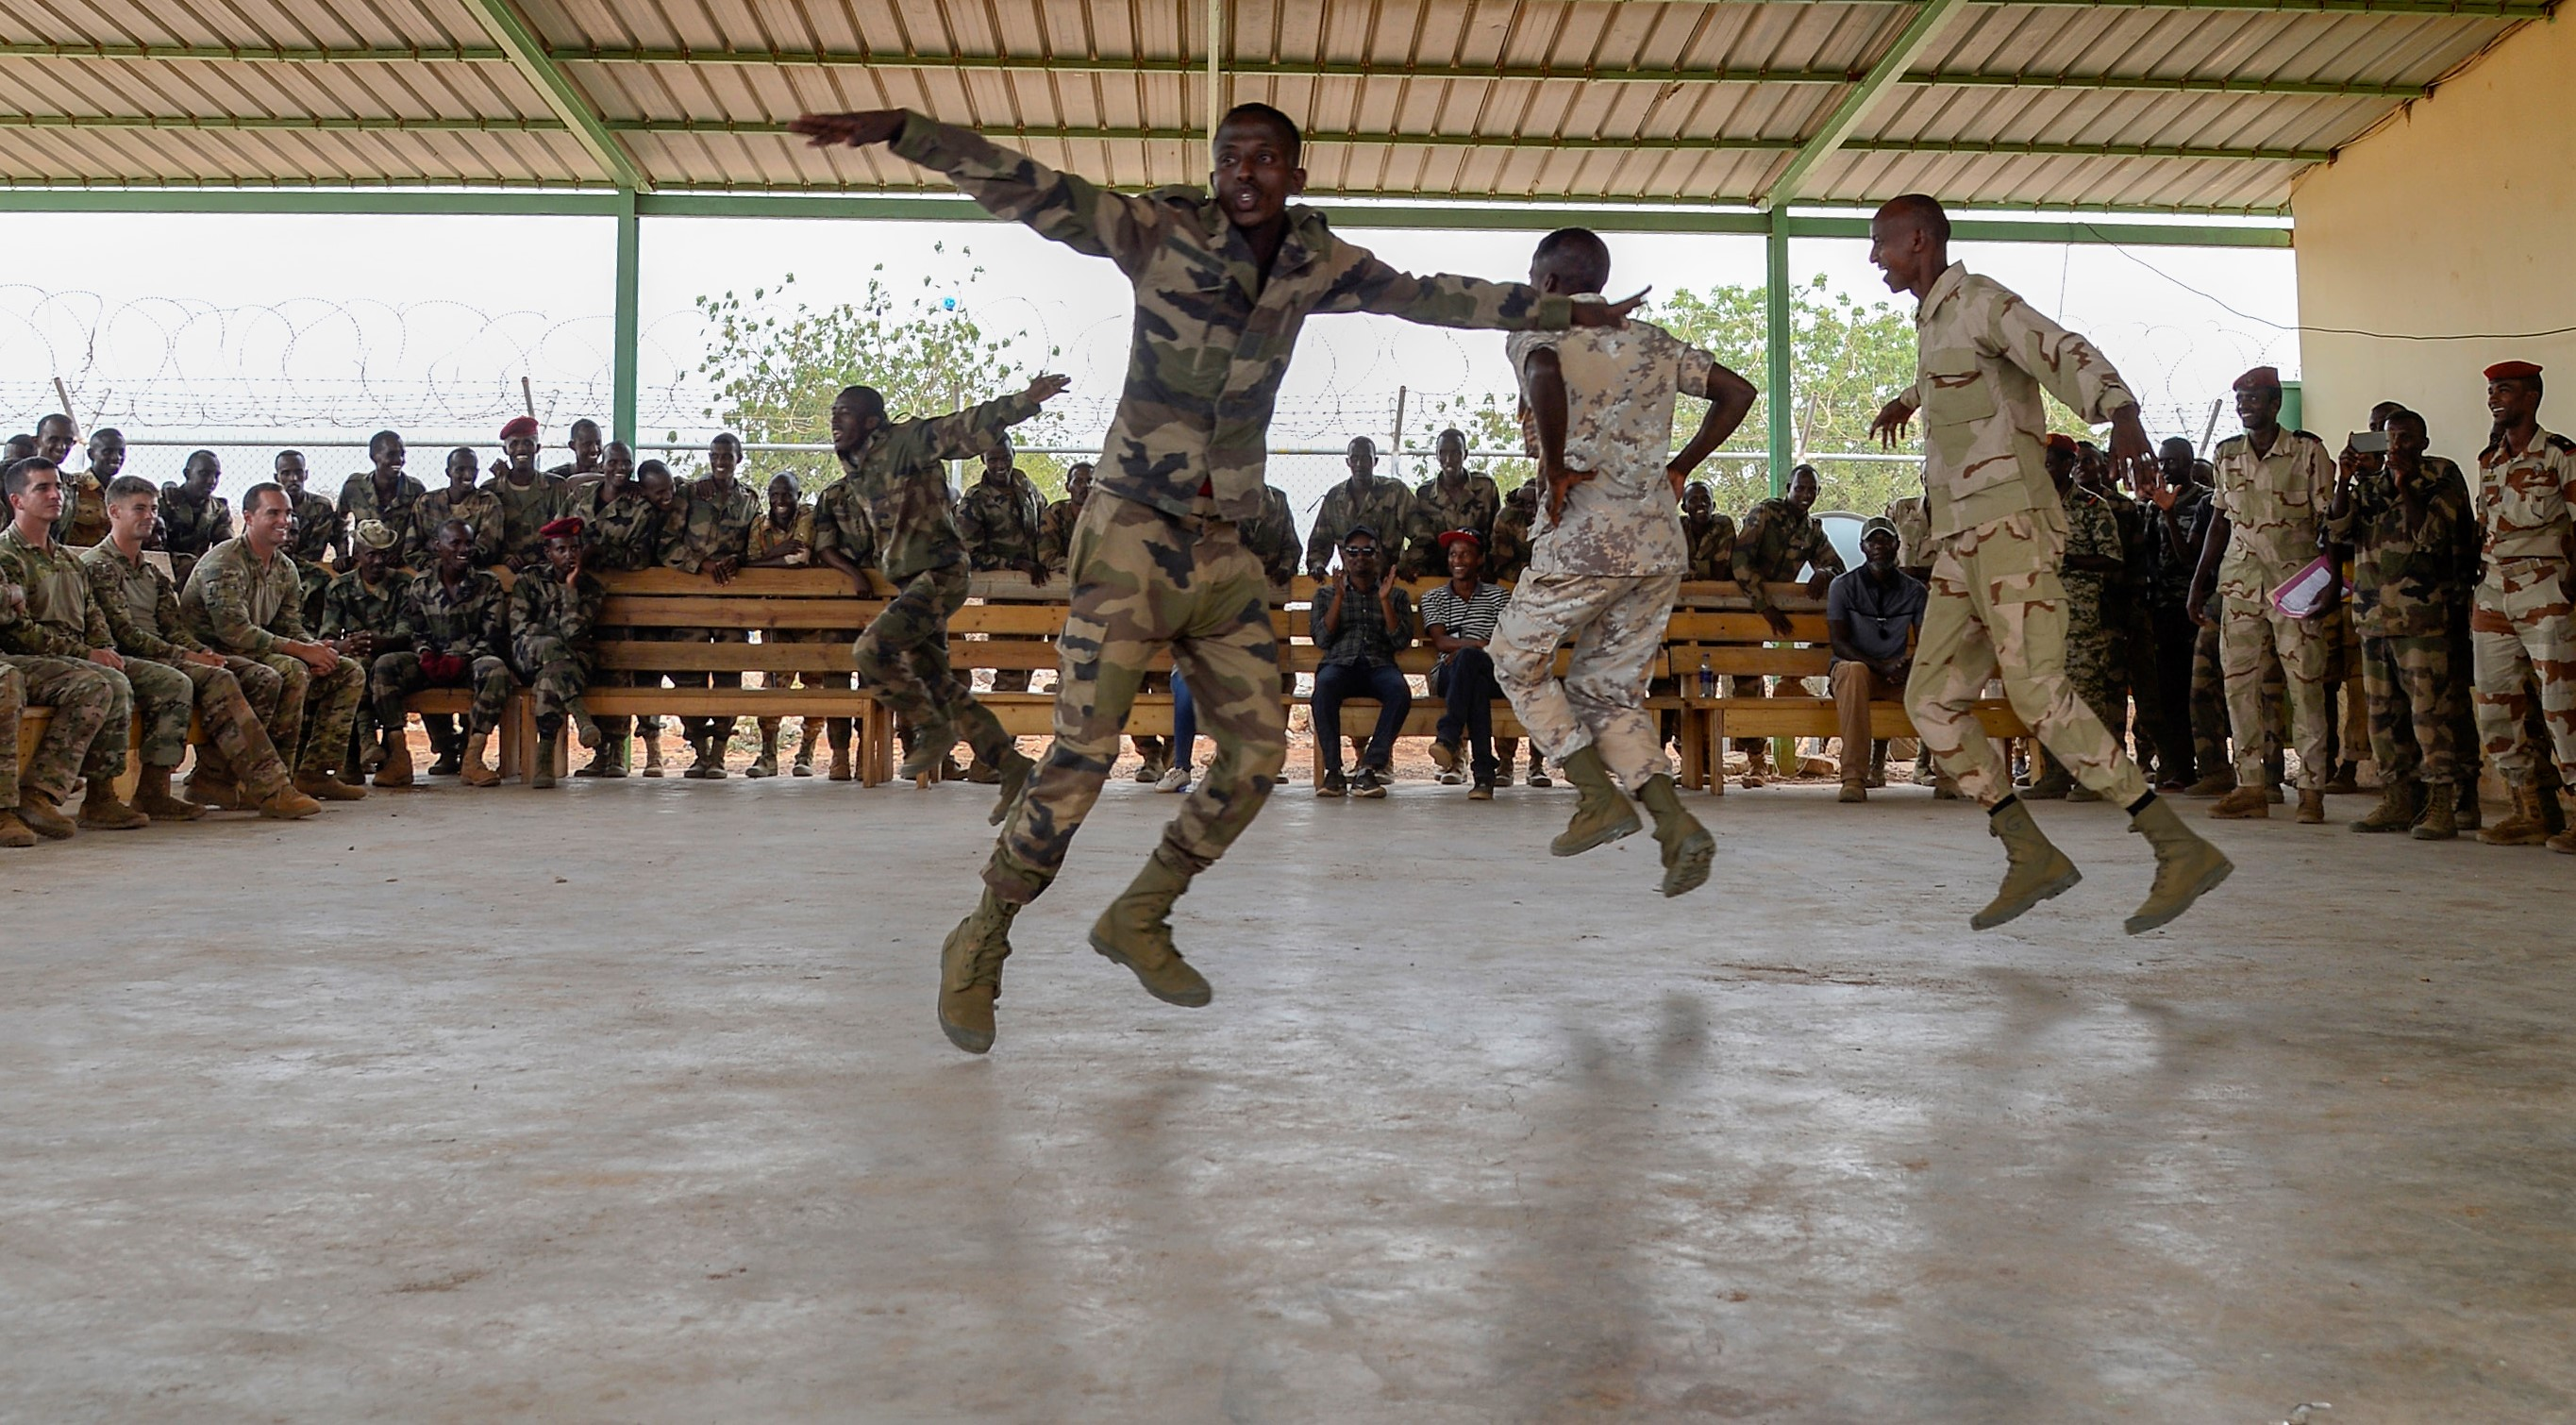 Members of the Djiboutian Army's Rapid Intervention Battalion (RIB) perform a traditional Somali dance during a celebration for new RIB graduates at a training site outside Djibouti City, June 28, 2018. The RIB is a U.S. Army trained unit that was formed to respond to crises and promote regional security and stability in East Africa. (U.S. Navy Photo by Mass Communication Specialist 2nd Class Timothy M. Ahearn)